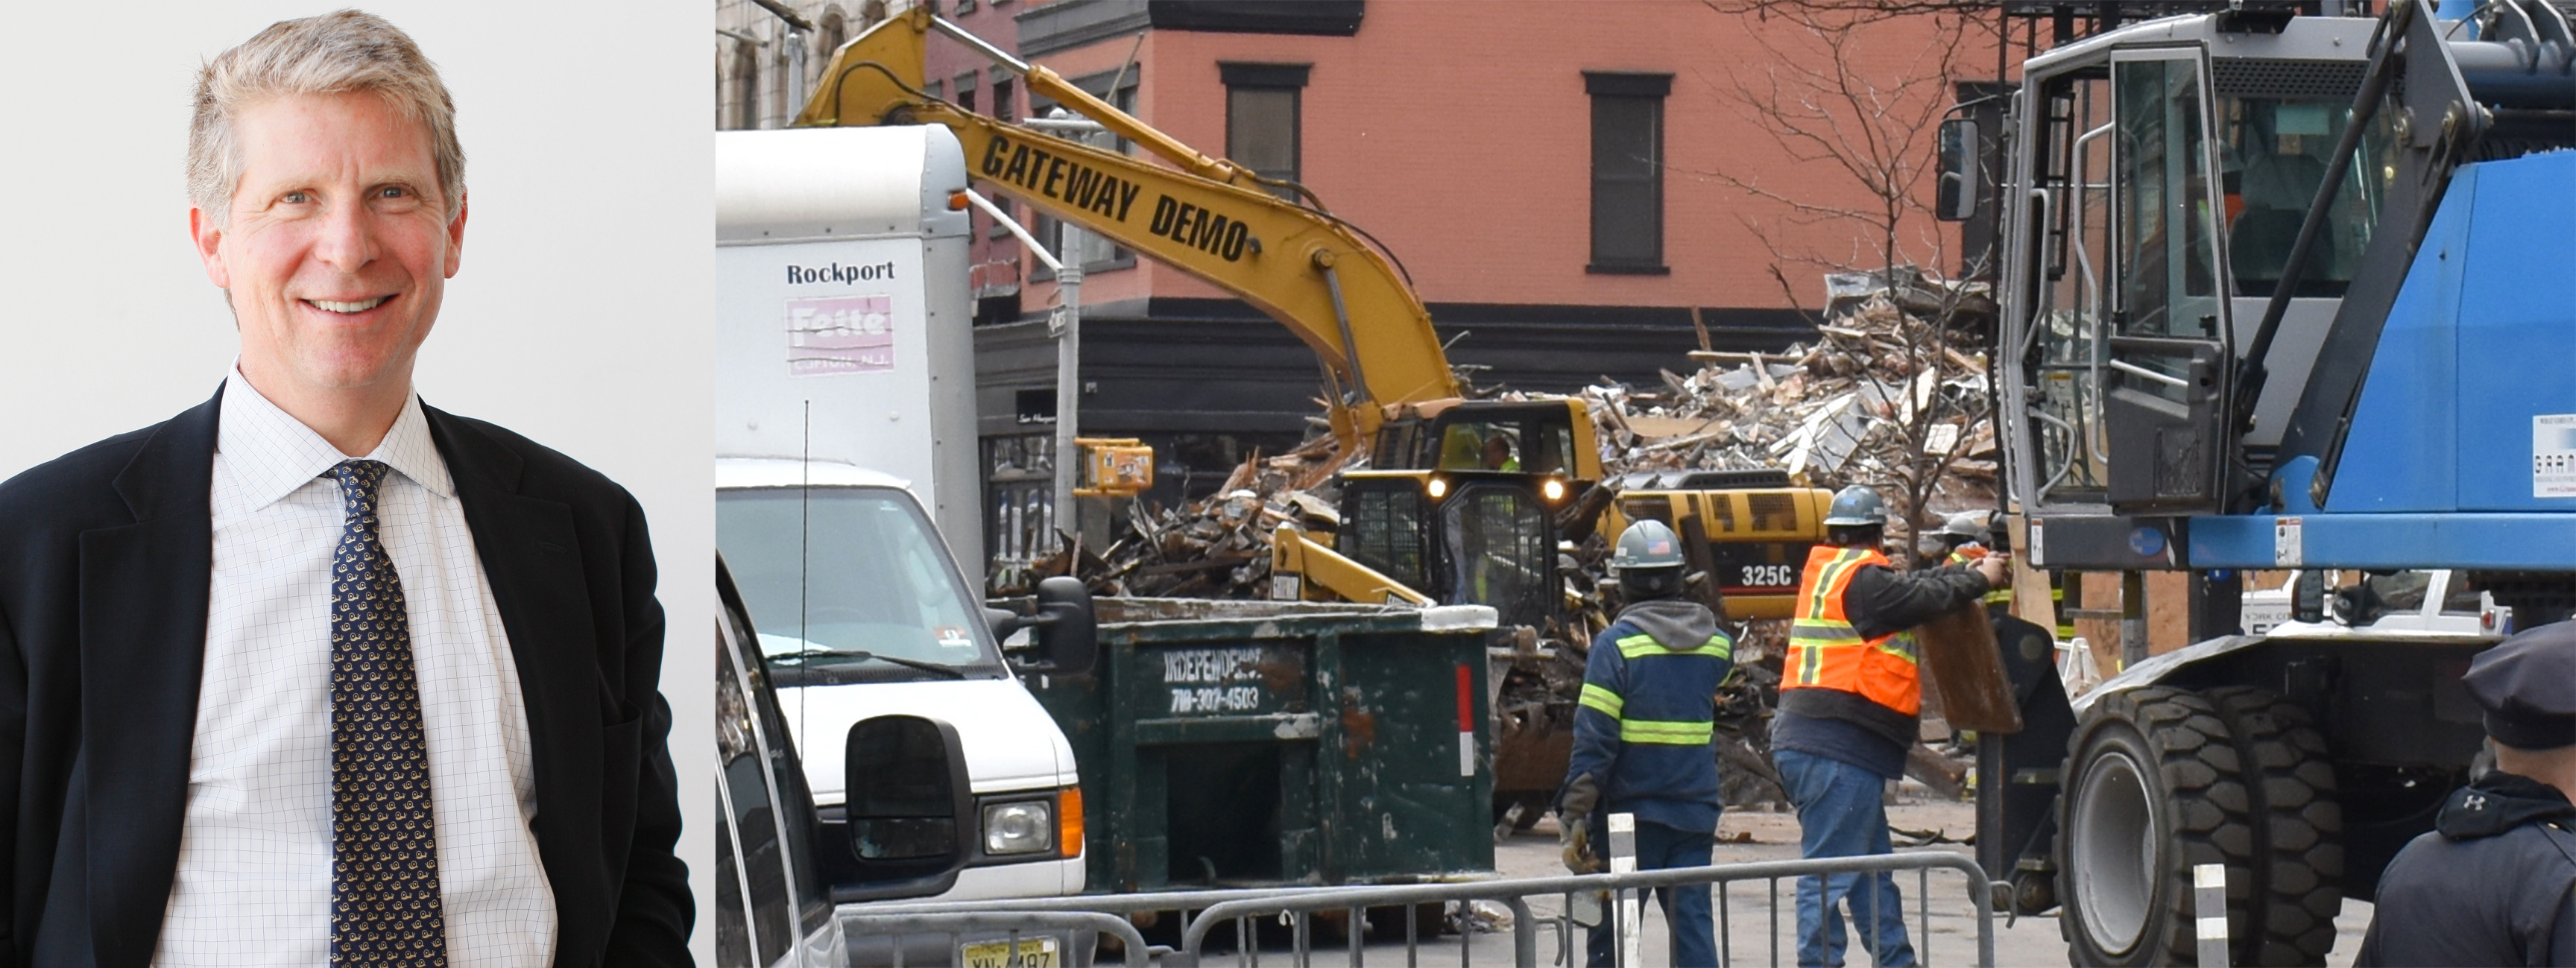 Cyrus Vance and the East Village gas explosion